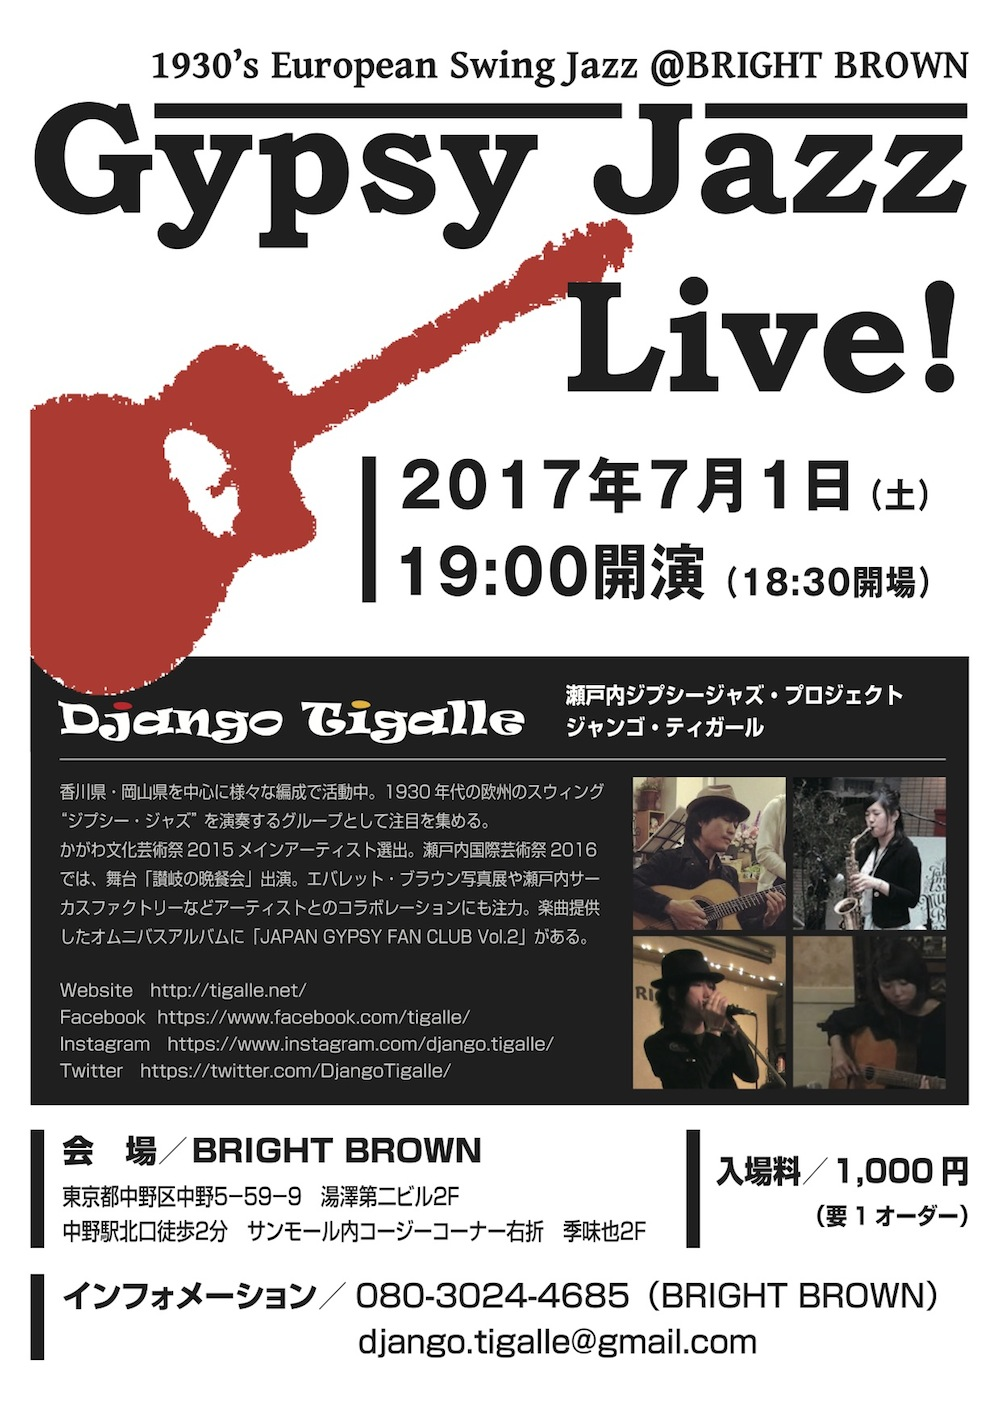 BRIGHT BROWN フライヤー